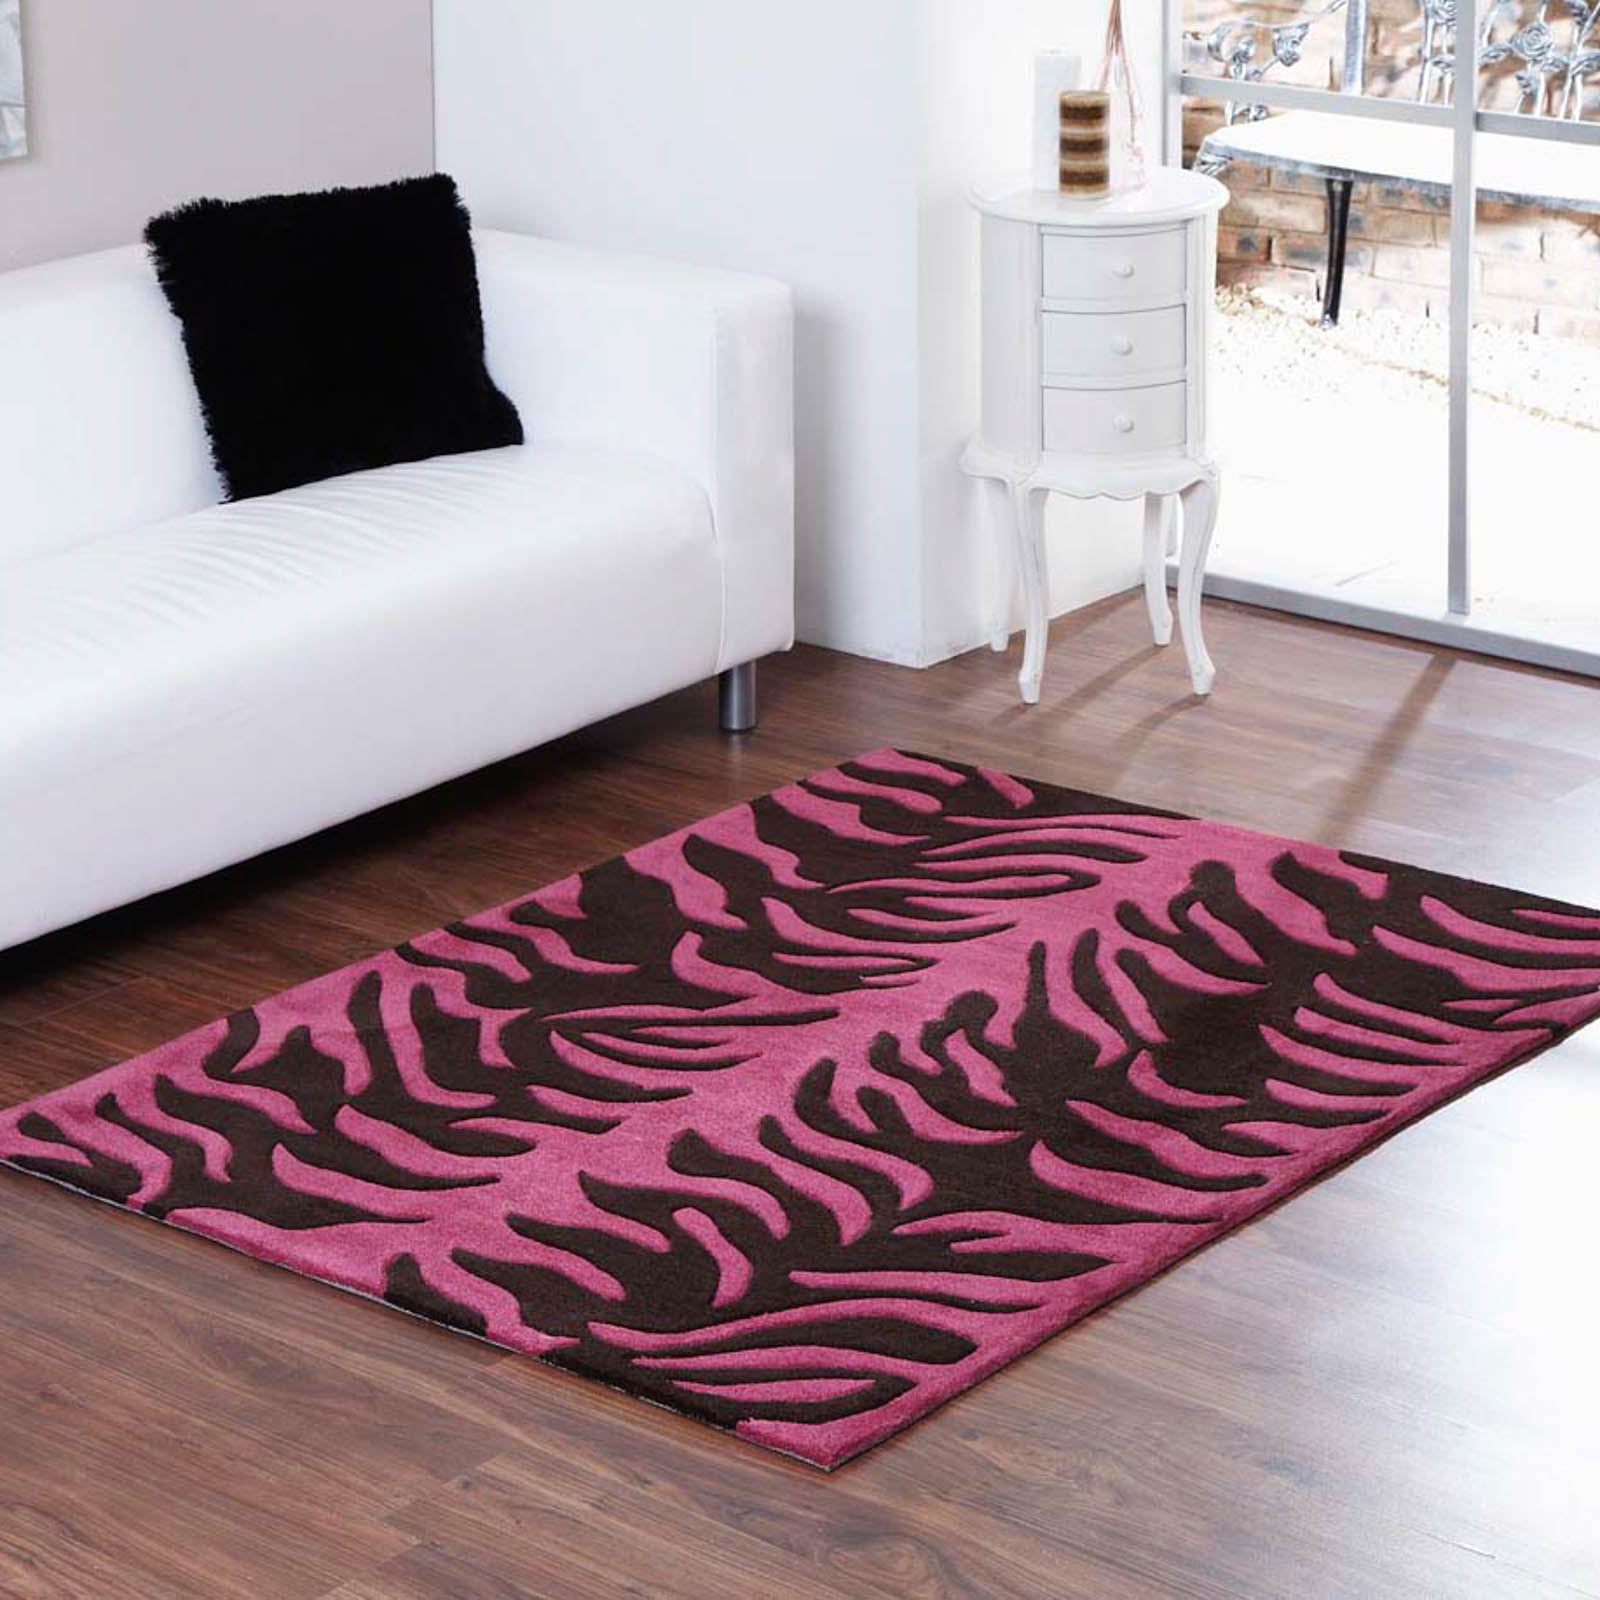 Aspire tigre rugs in chocolate plum free uk delivery for Plum and cream rug